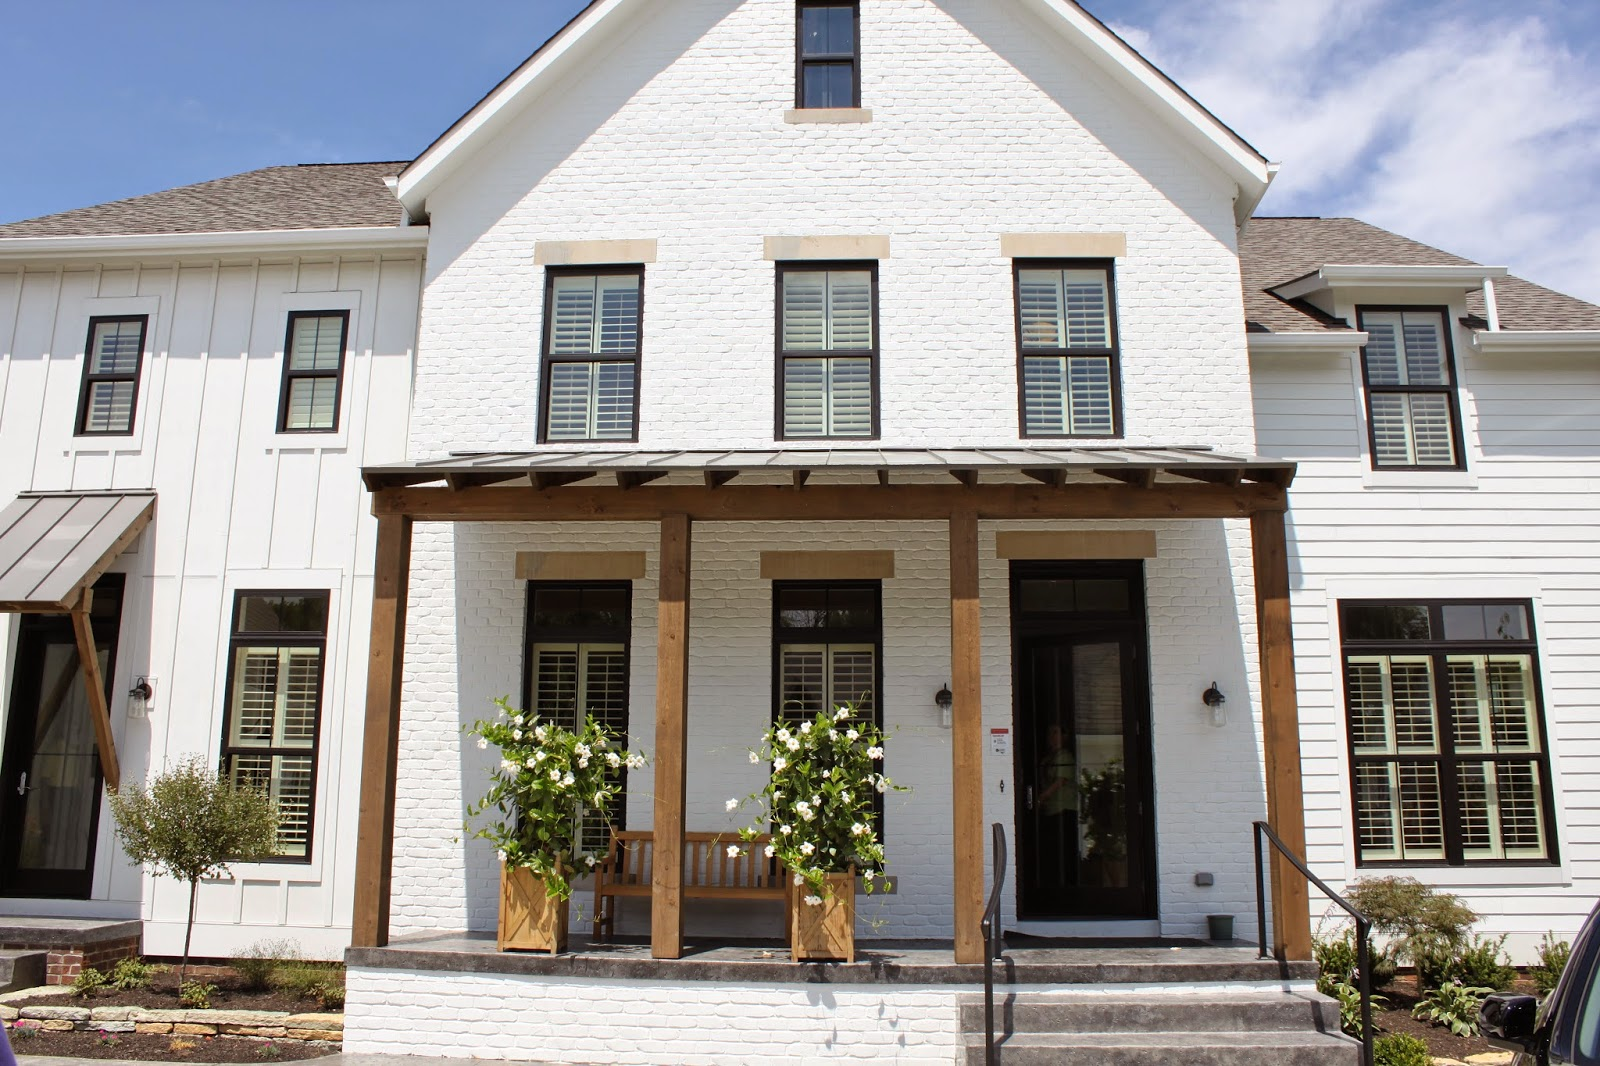 The fat hydrangea parade of homes week 2014 house 3 for Modern farmhouse exterior